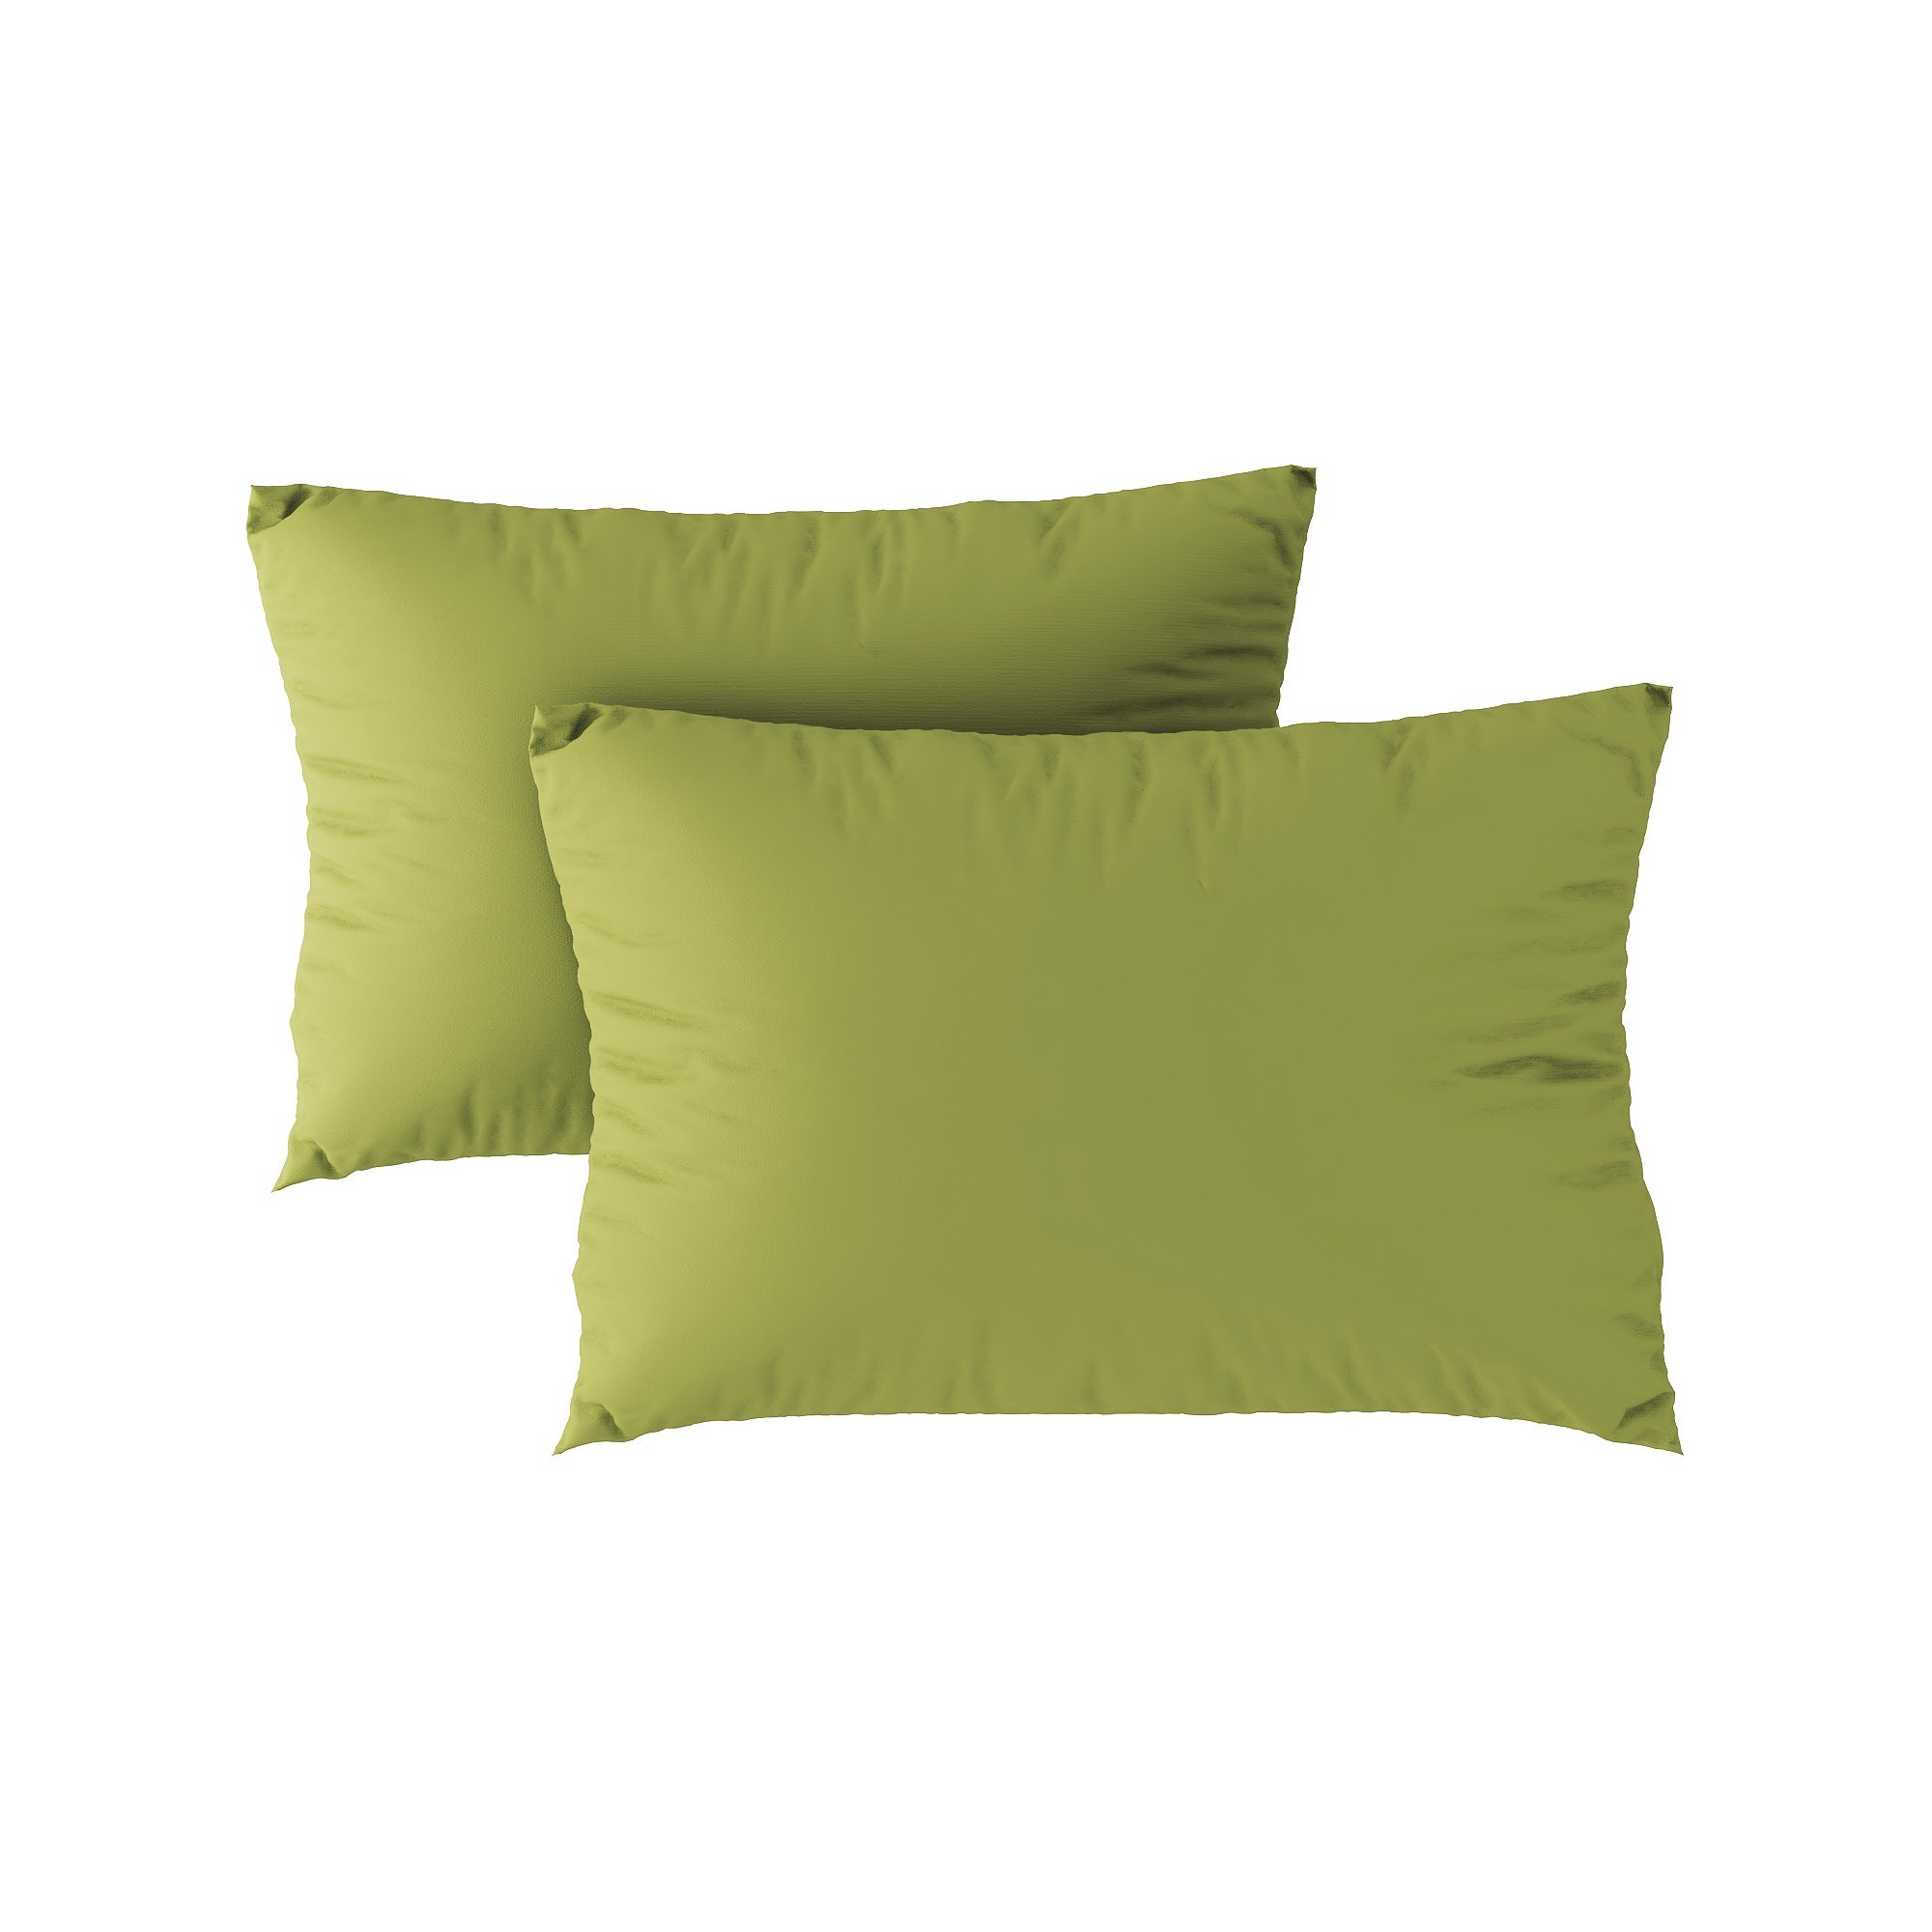 Standard pillow case 01 Light green (2pcs)